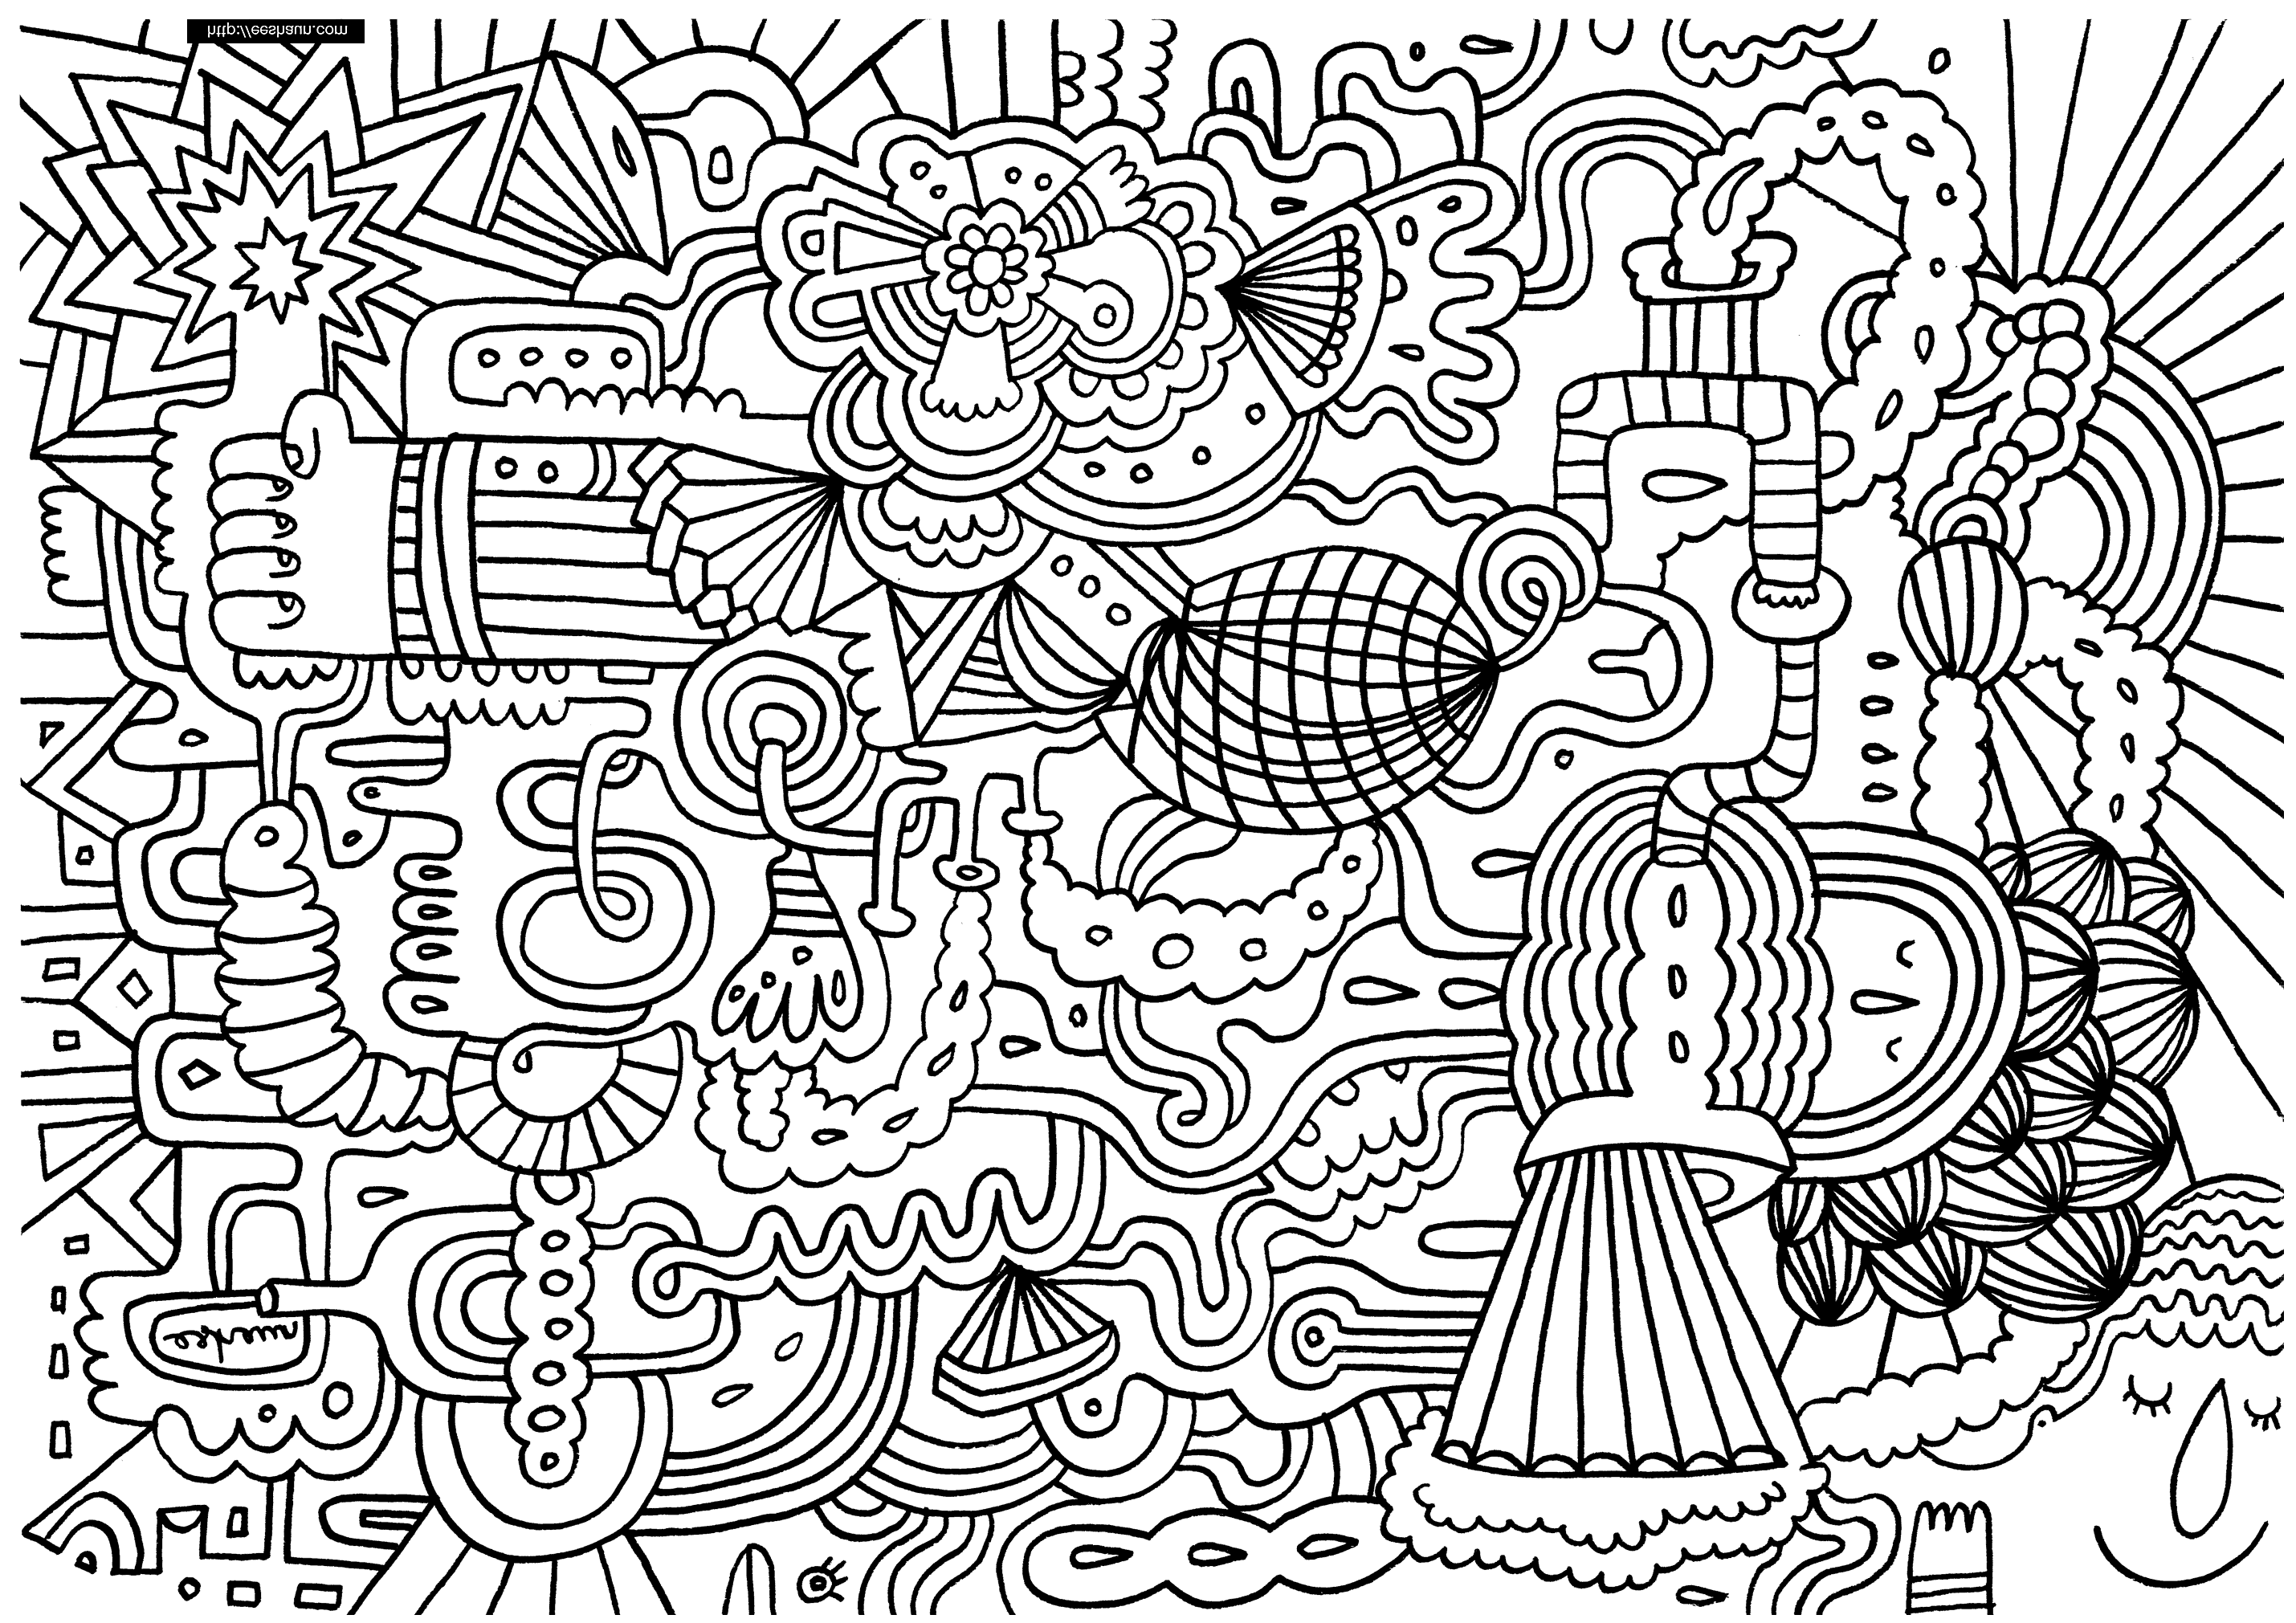 art coloring pages for kids - photo#14